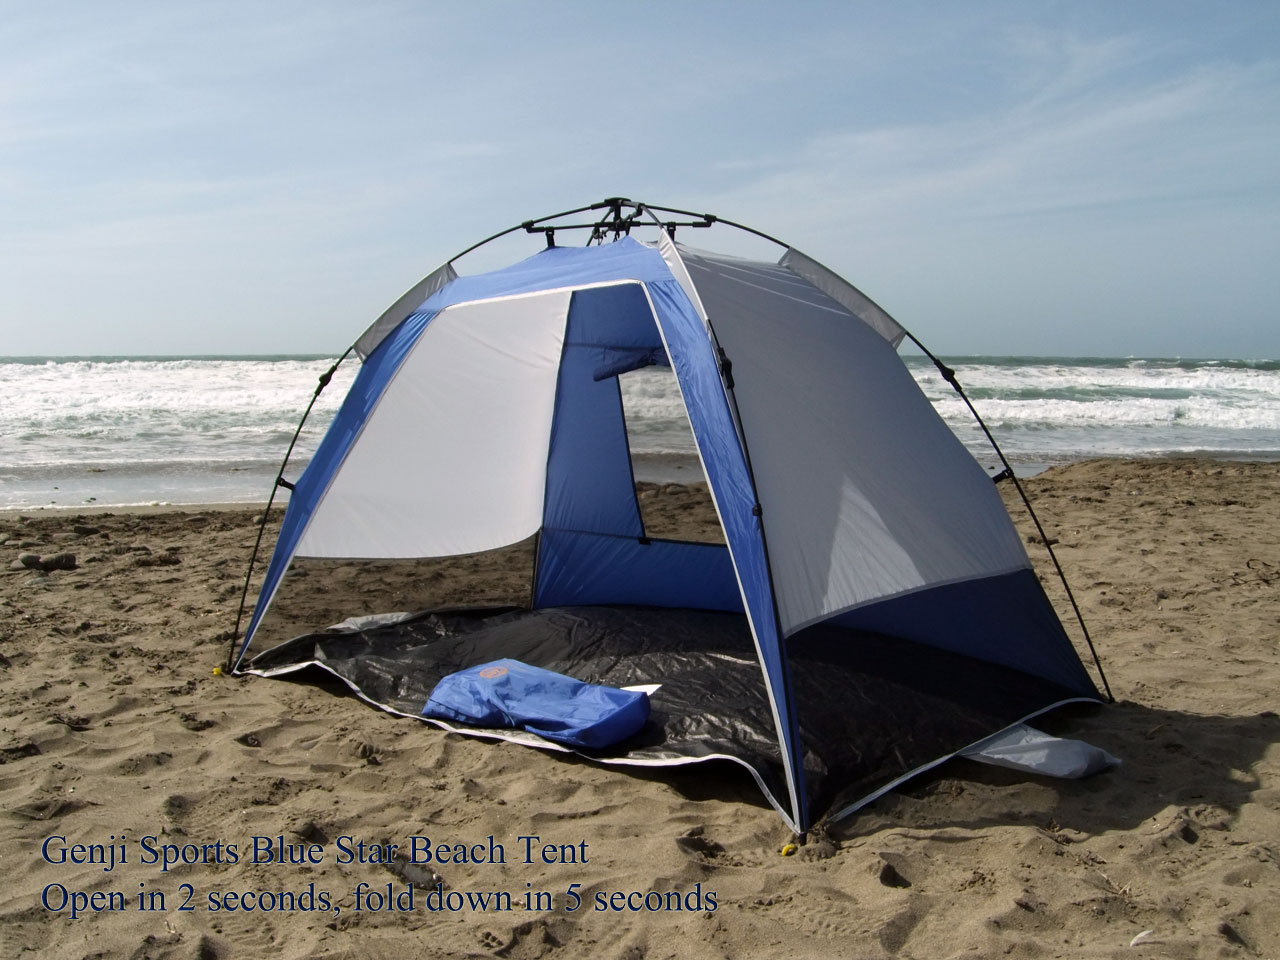 & Genji Sports Instant Blue Star Beach SunShelter Tent - Walmart.com